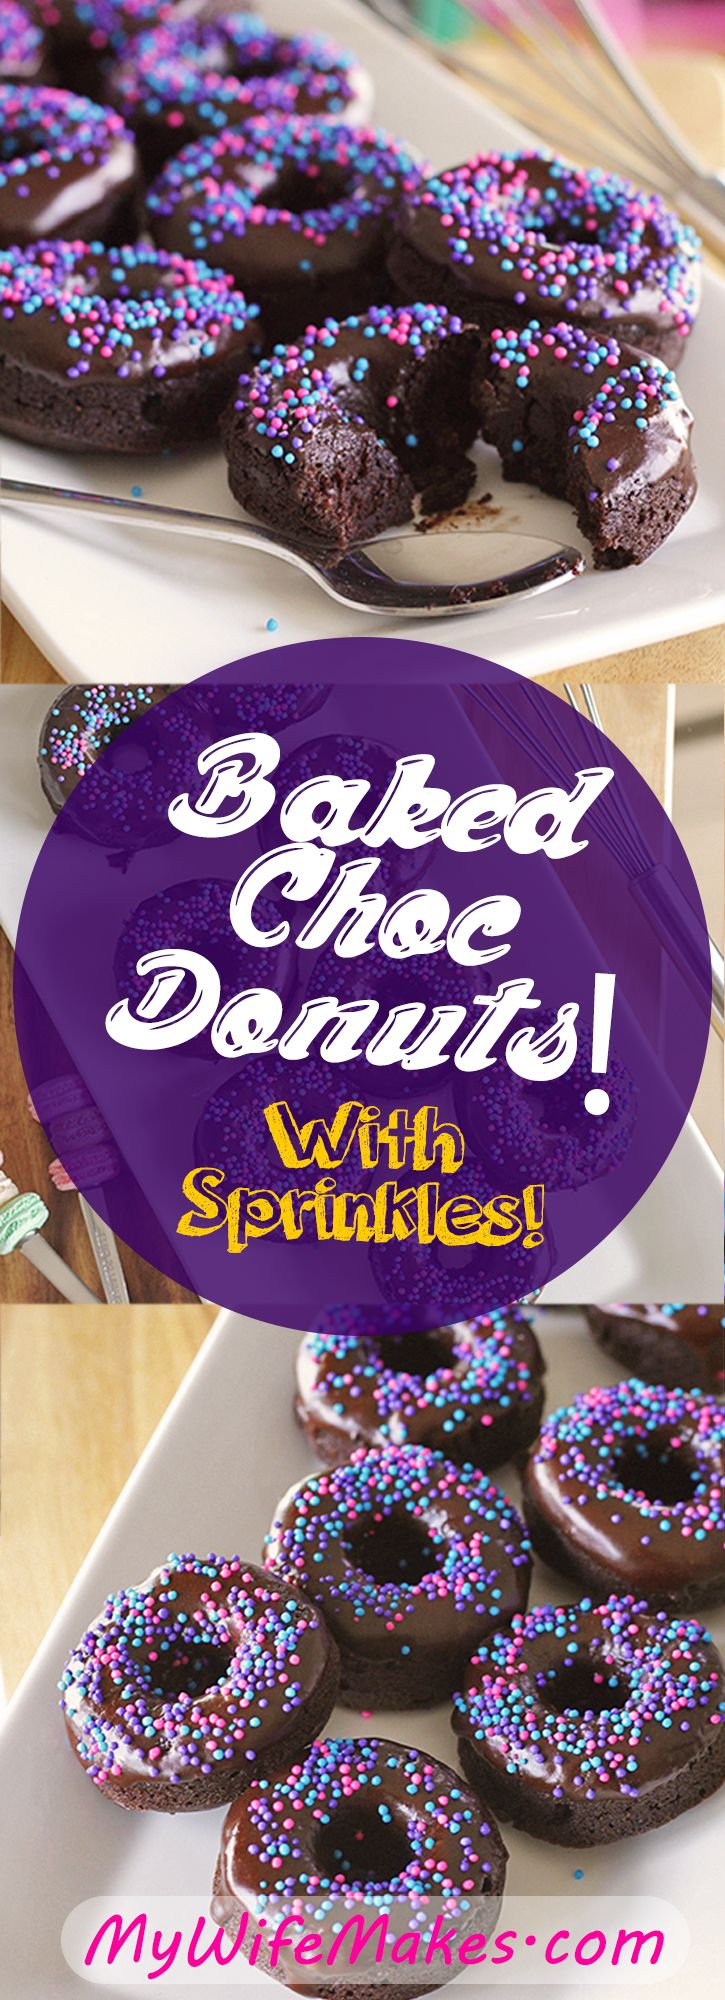 Baked Chocolate Donuts (Not Fried!). Healthier, without sacrificing an ounce of taste! Sprinkles add that lovely extra crunch with every bite. Simple to prepare, perfect for parties! One bite is not enough. (A vegan recipe.)